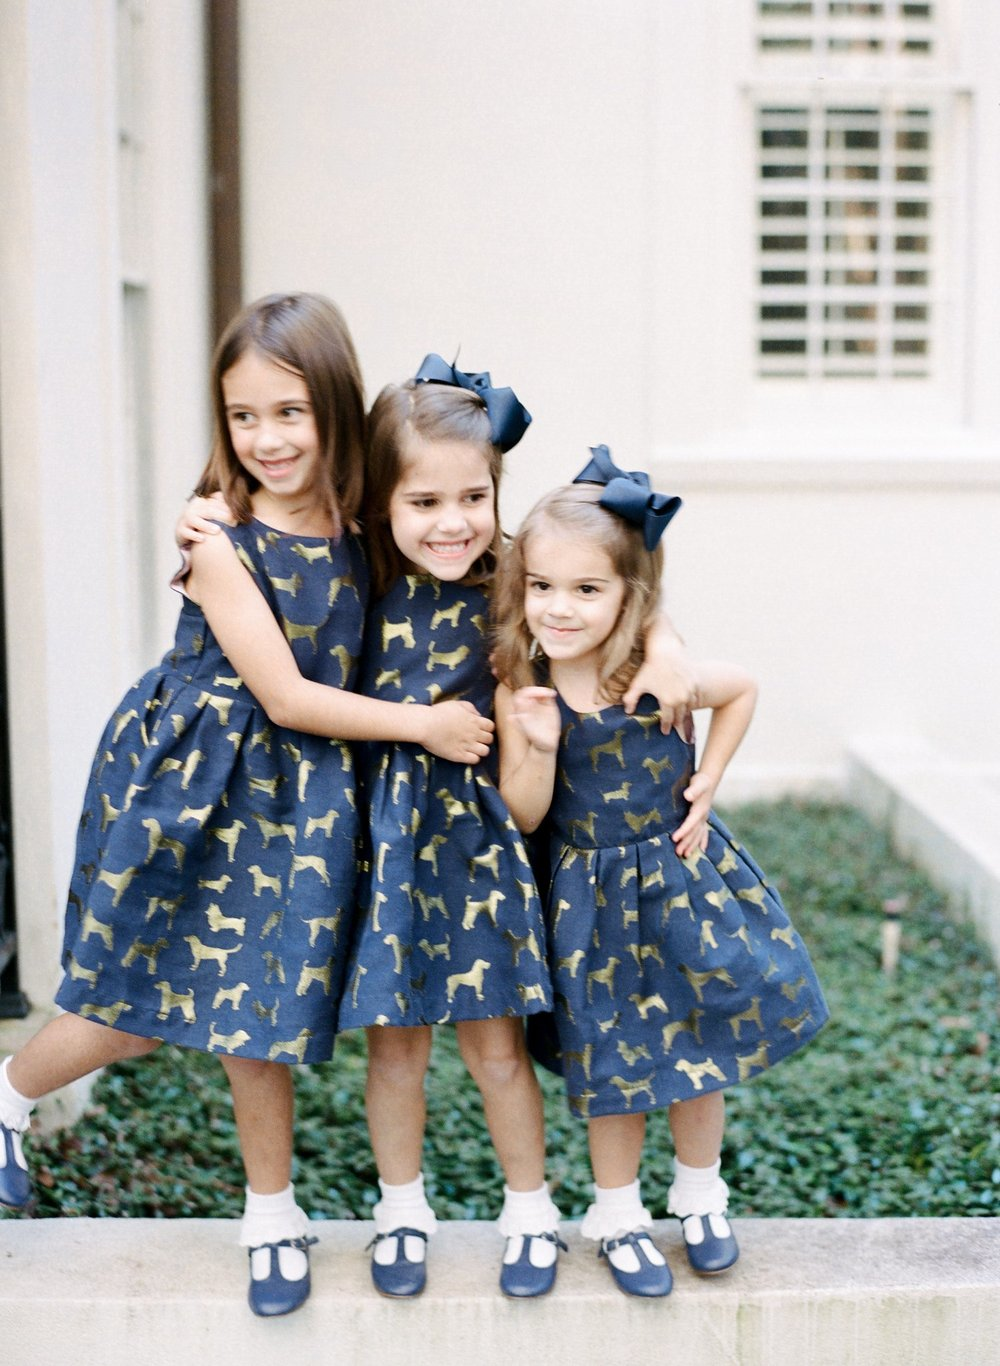 tips for the perfect holiday photos west palm beach family photographer shannon griffin photography_0014.jpg